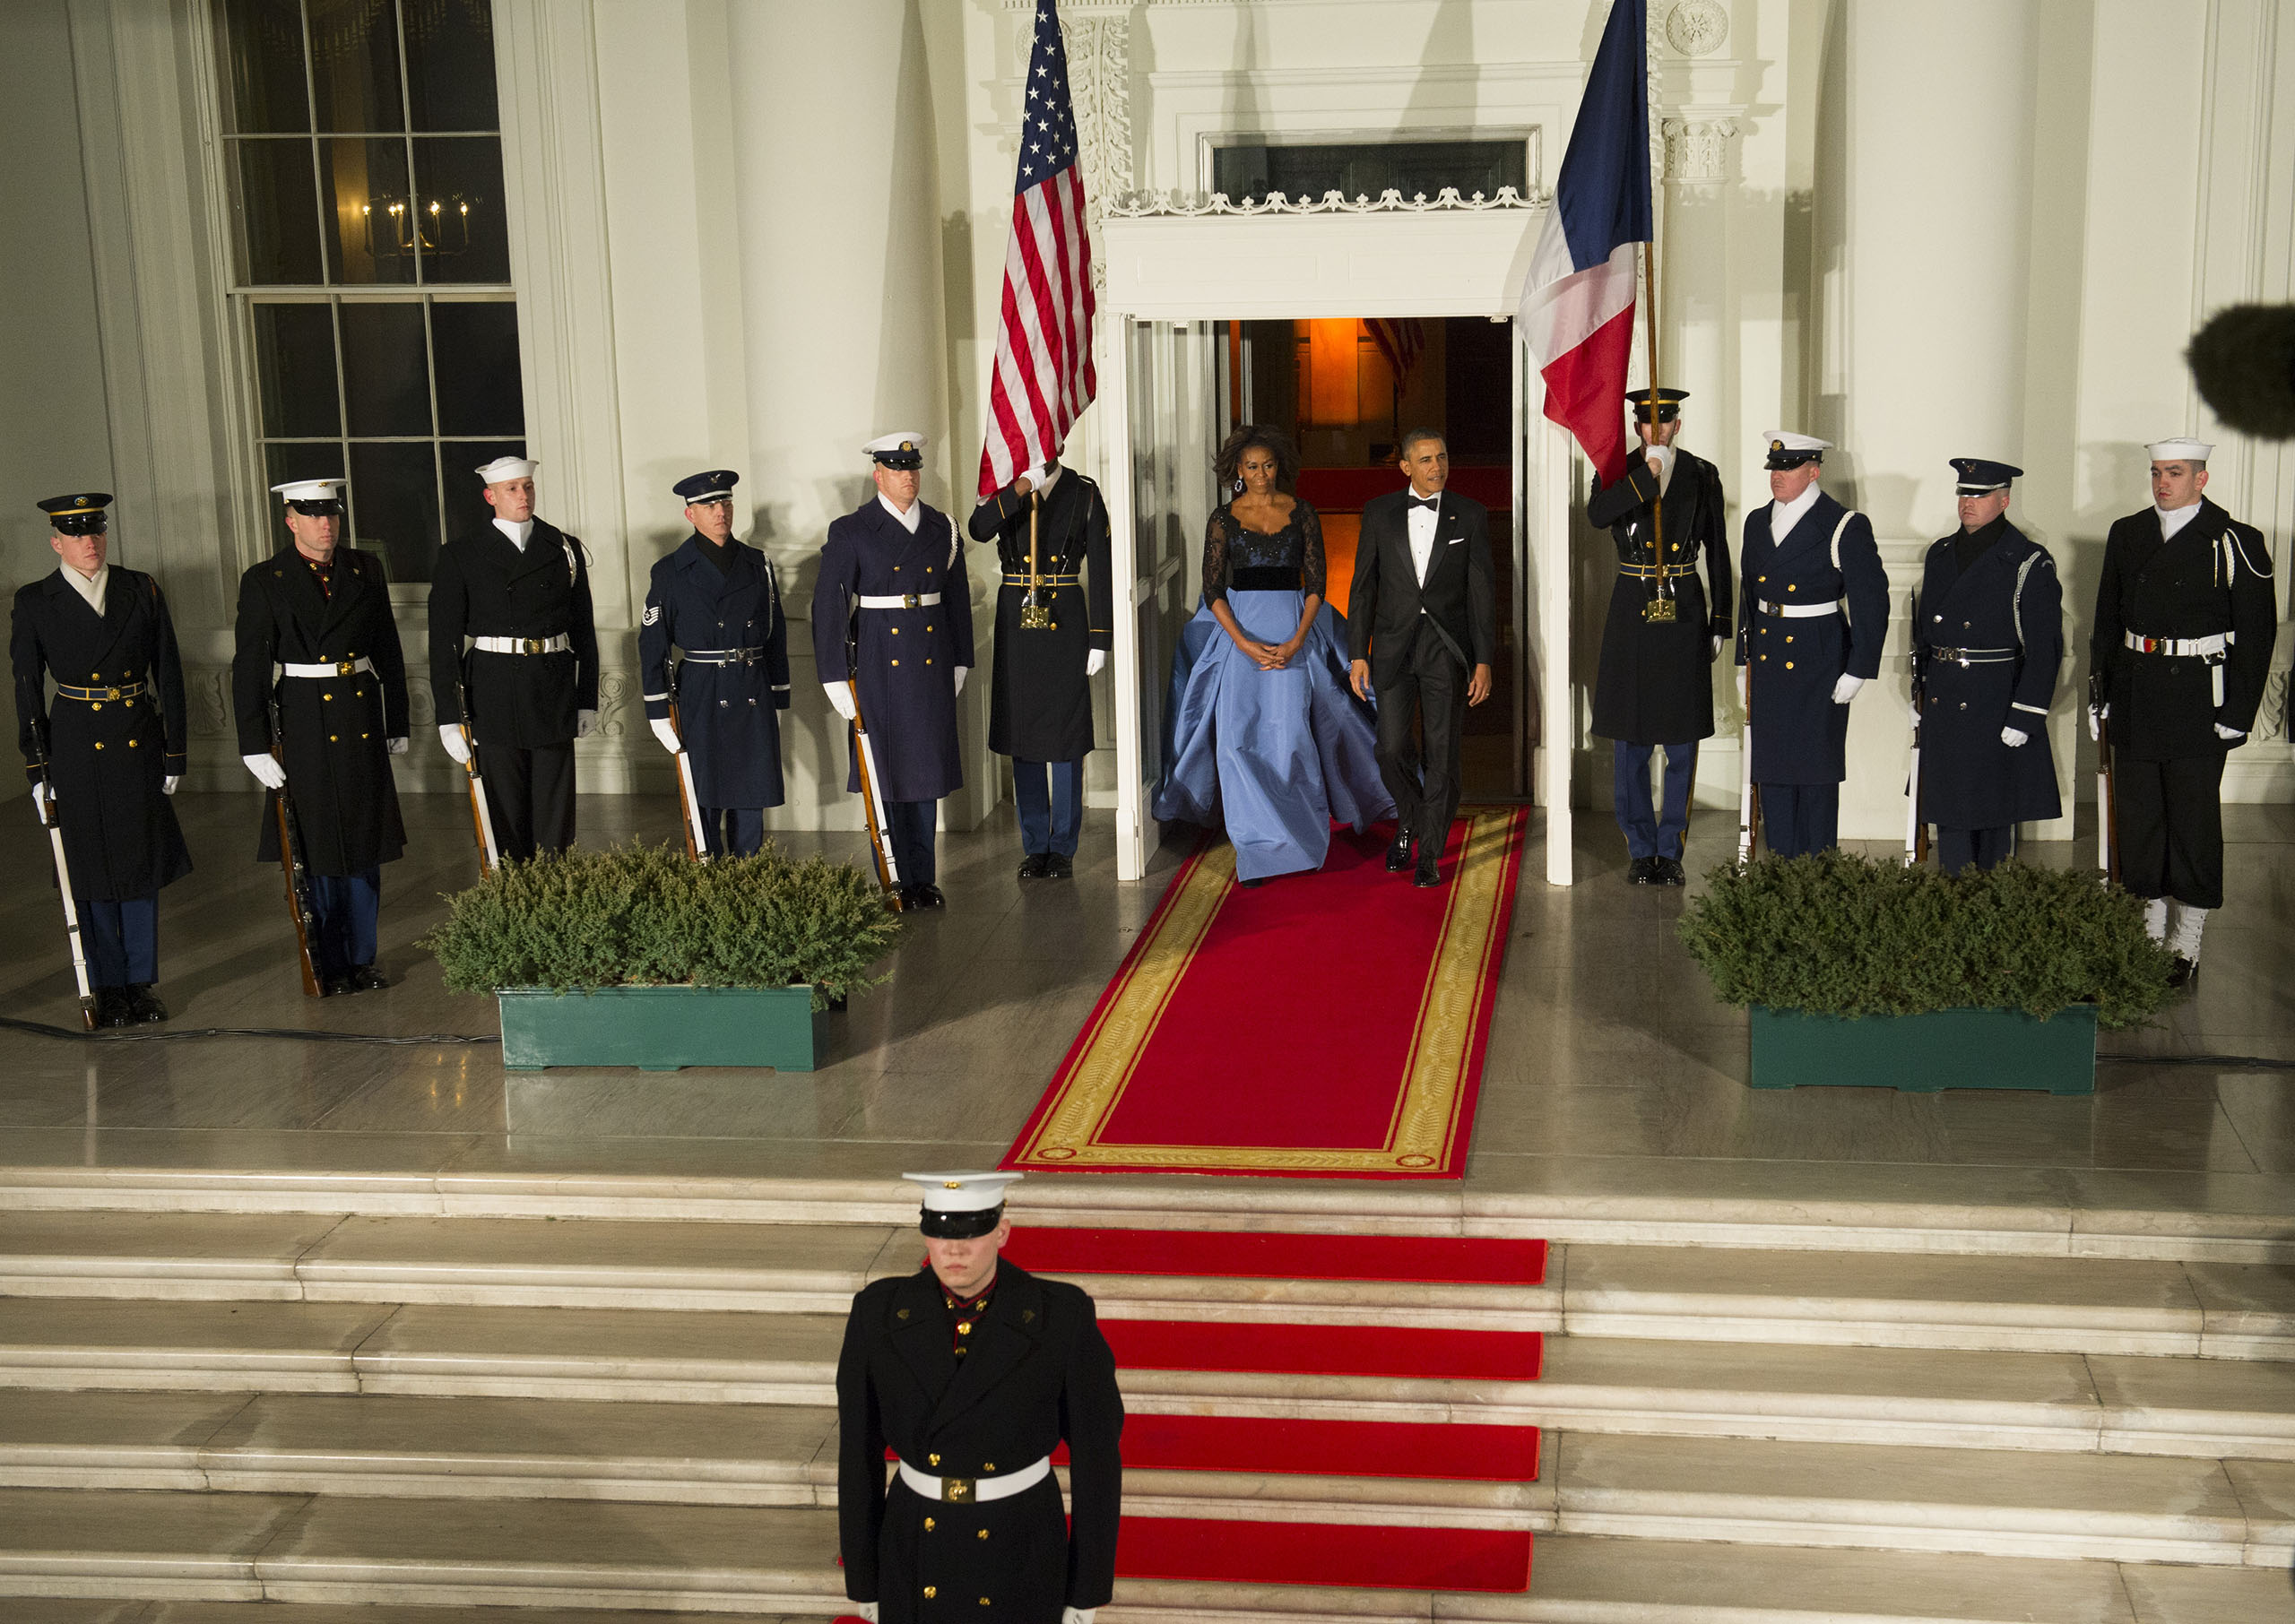 President Francois Hollande of France are greeted by Michelle Obama and Barack Obama as he arrives at the North Portico for a state dinner at the White House in Washington, D.C., on Feb. 11, 2014.